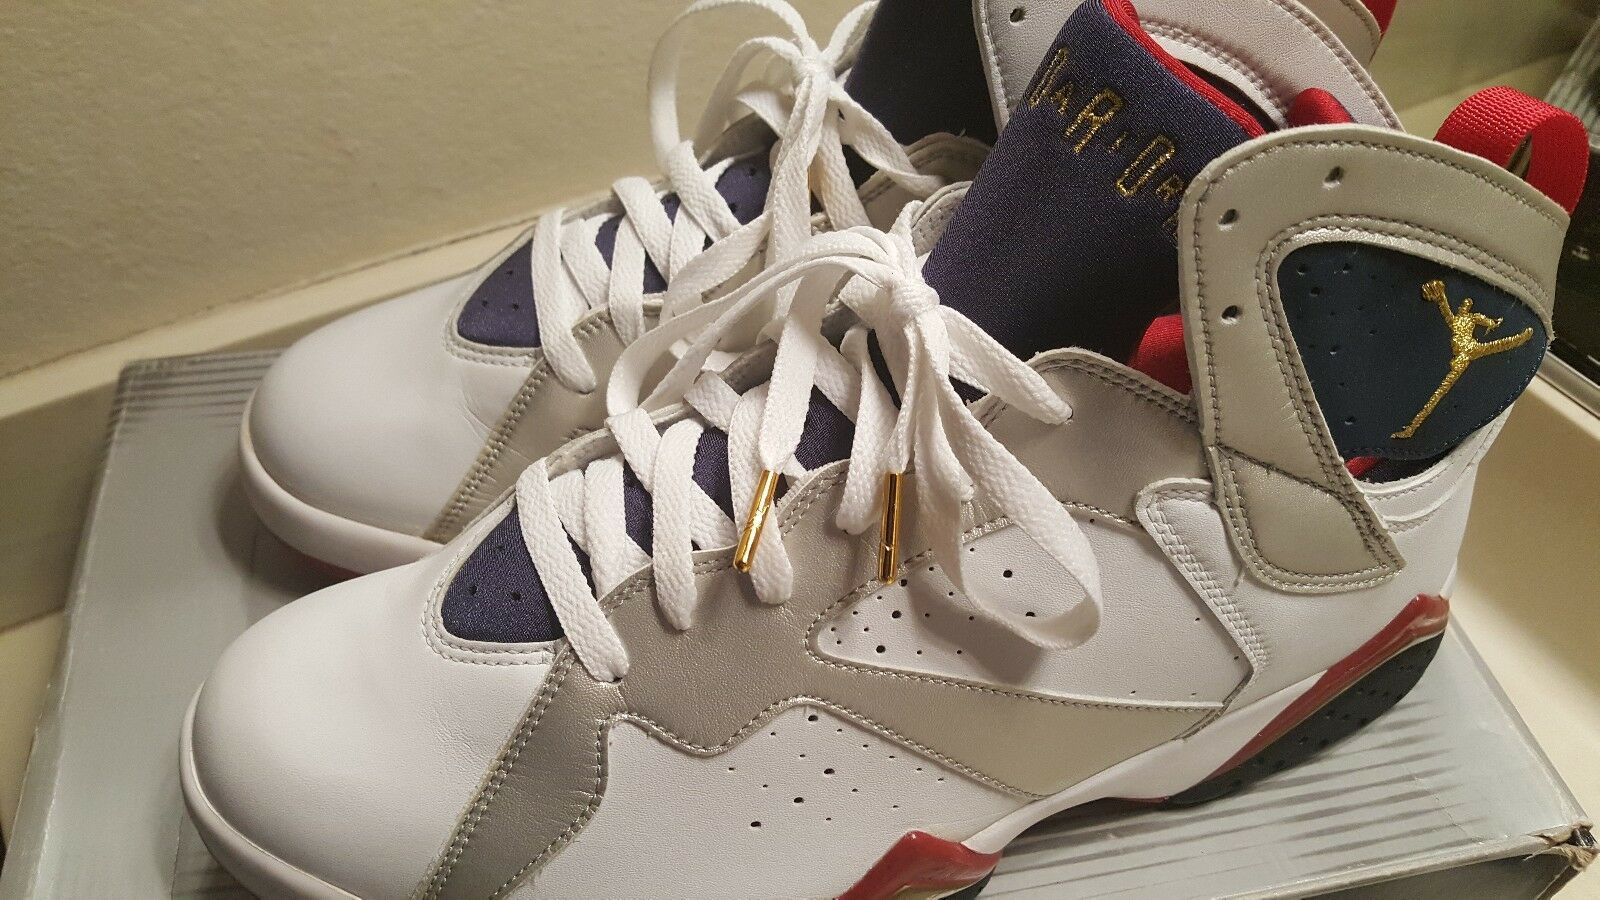 750ce720855 VNDS Nike Air Jordan 7 Retro Olympic Style Size 12 2004 nxpdai8095-Athletic  Shoes